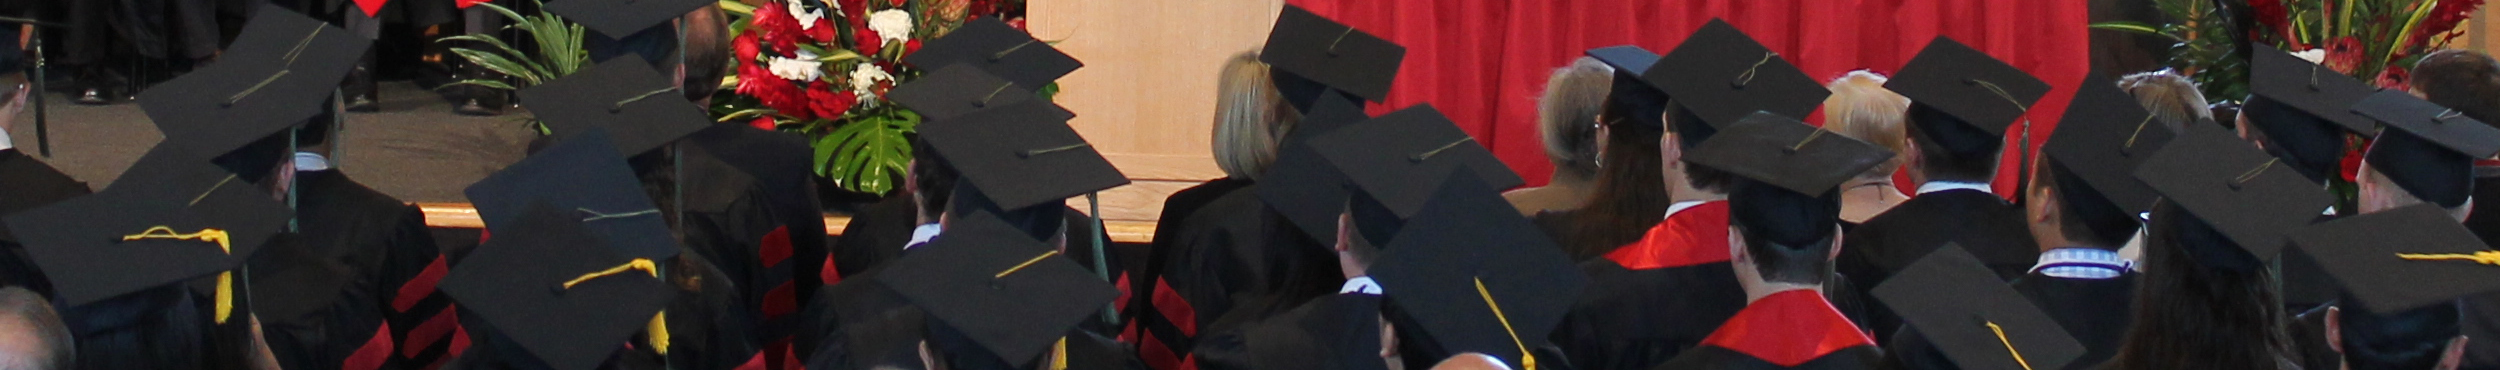 Photograph of students at a convocation wearing graduation caps and gowns.